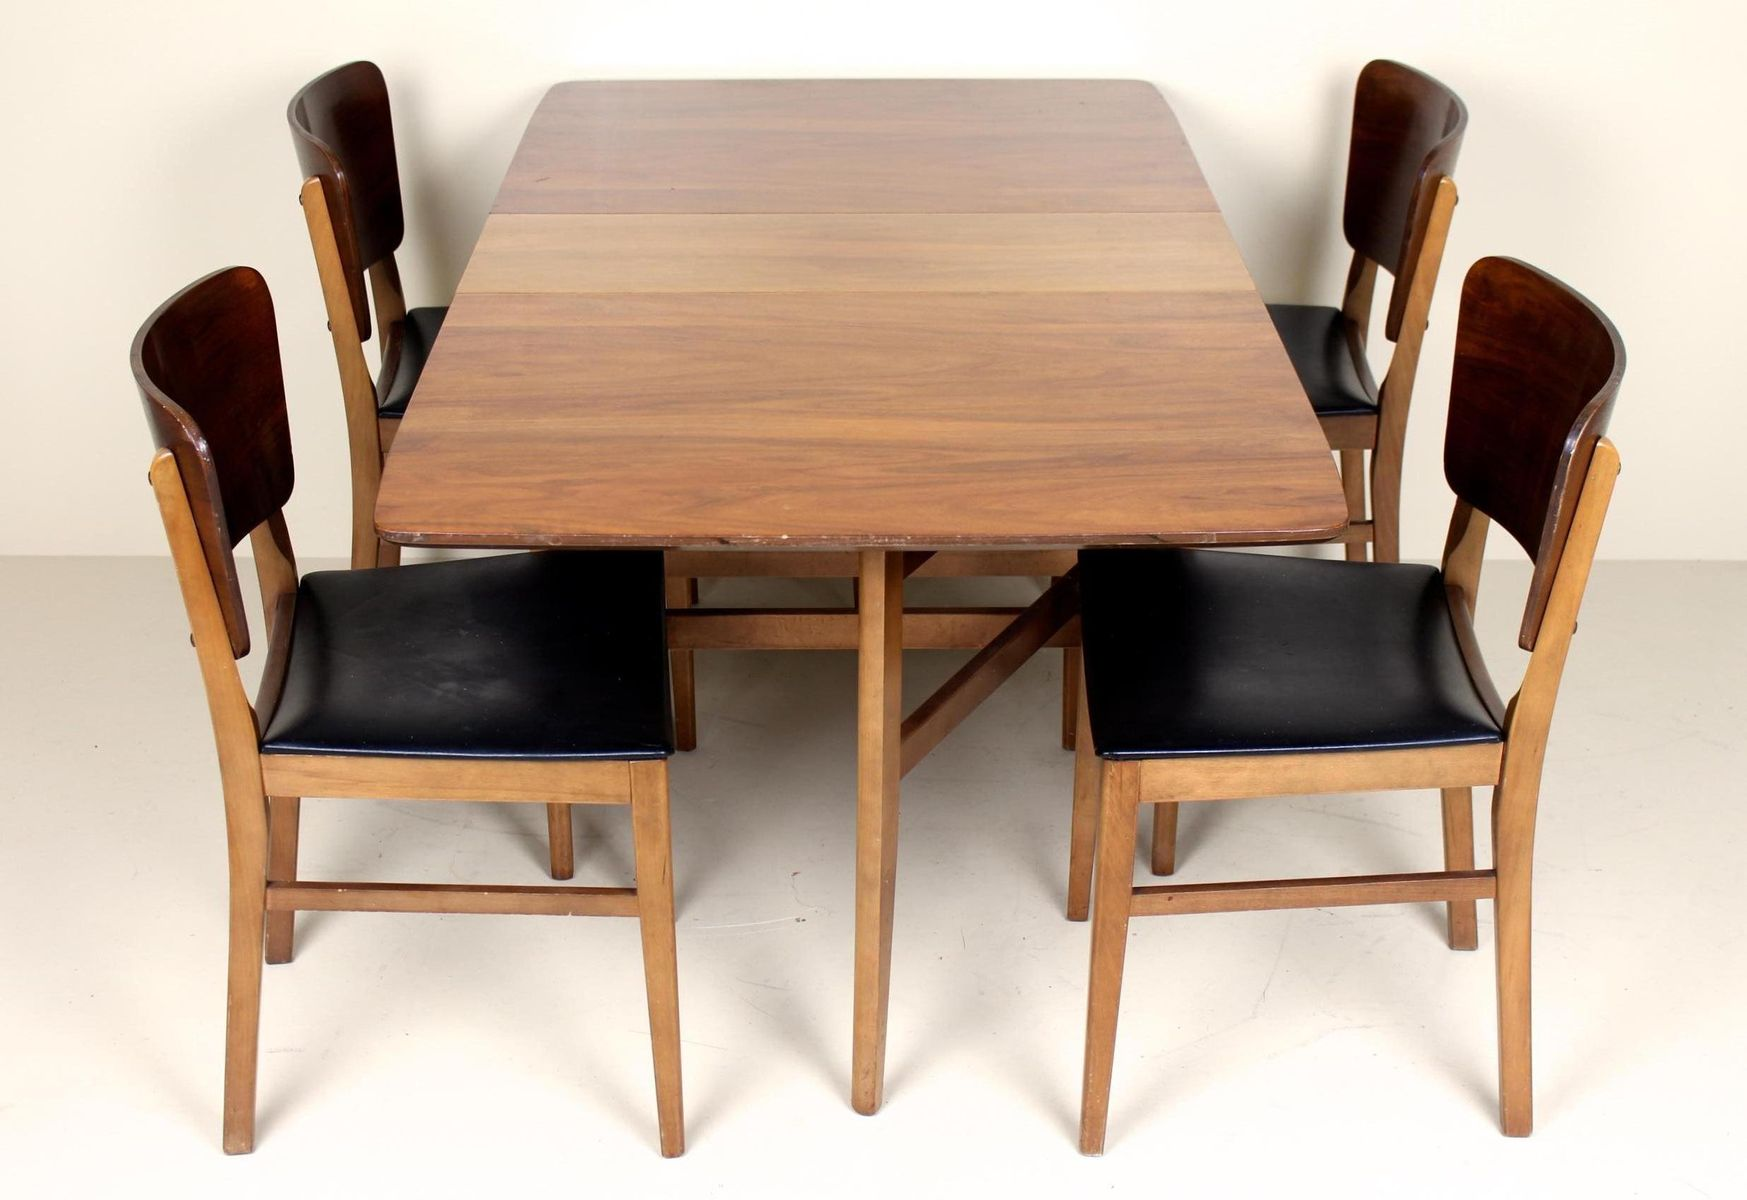 Vintage Walnut Gateleg Dining Table and 4 Chairs